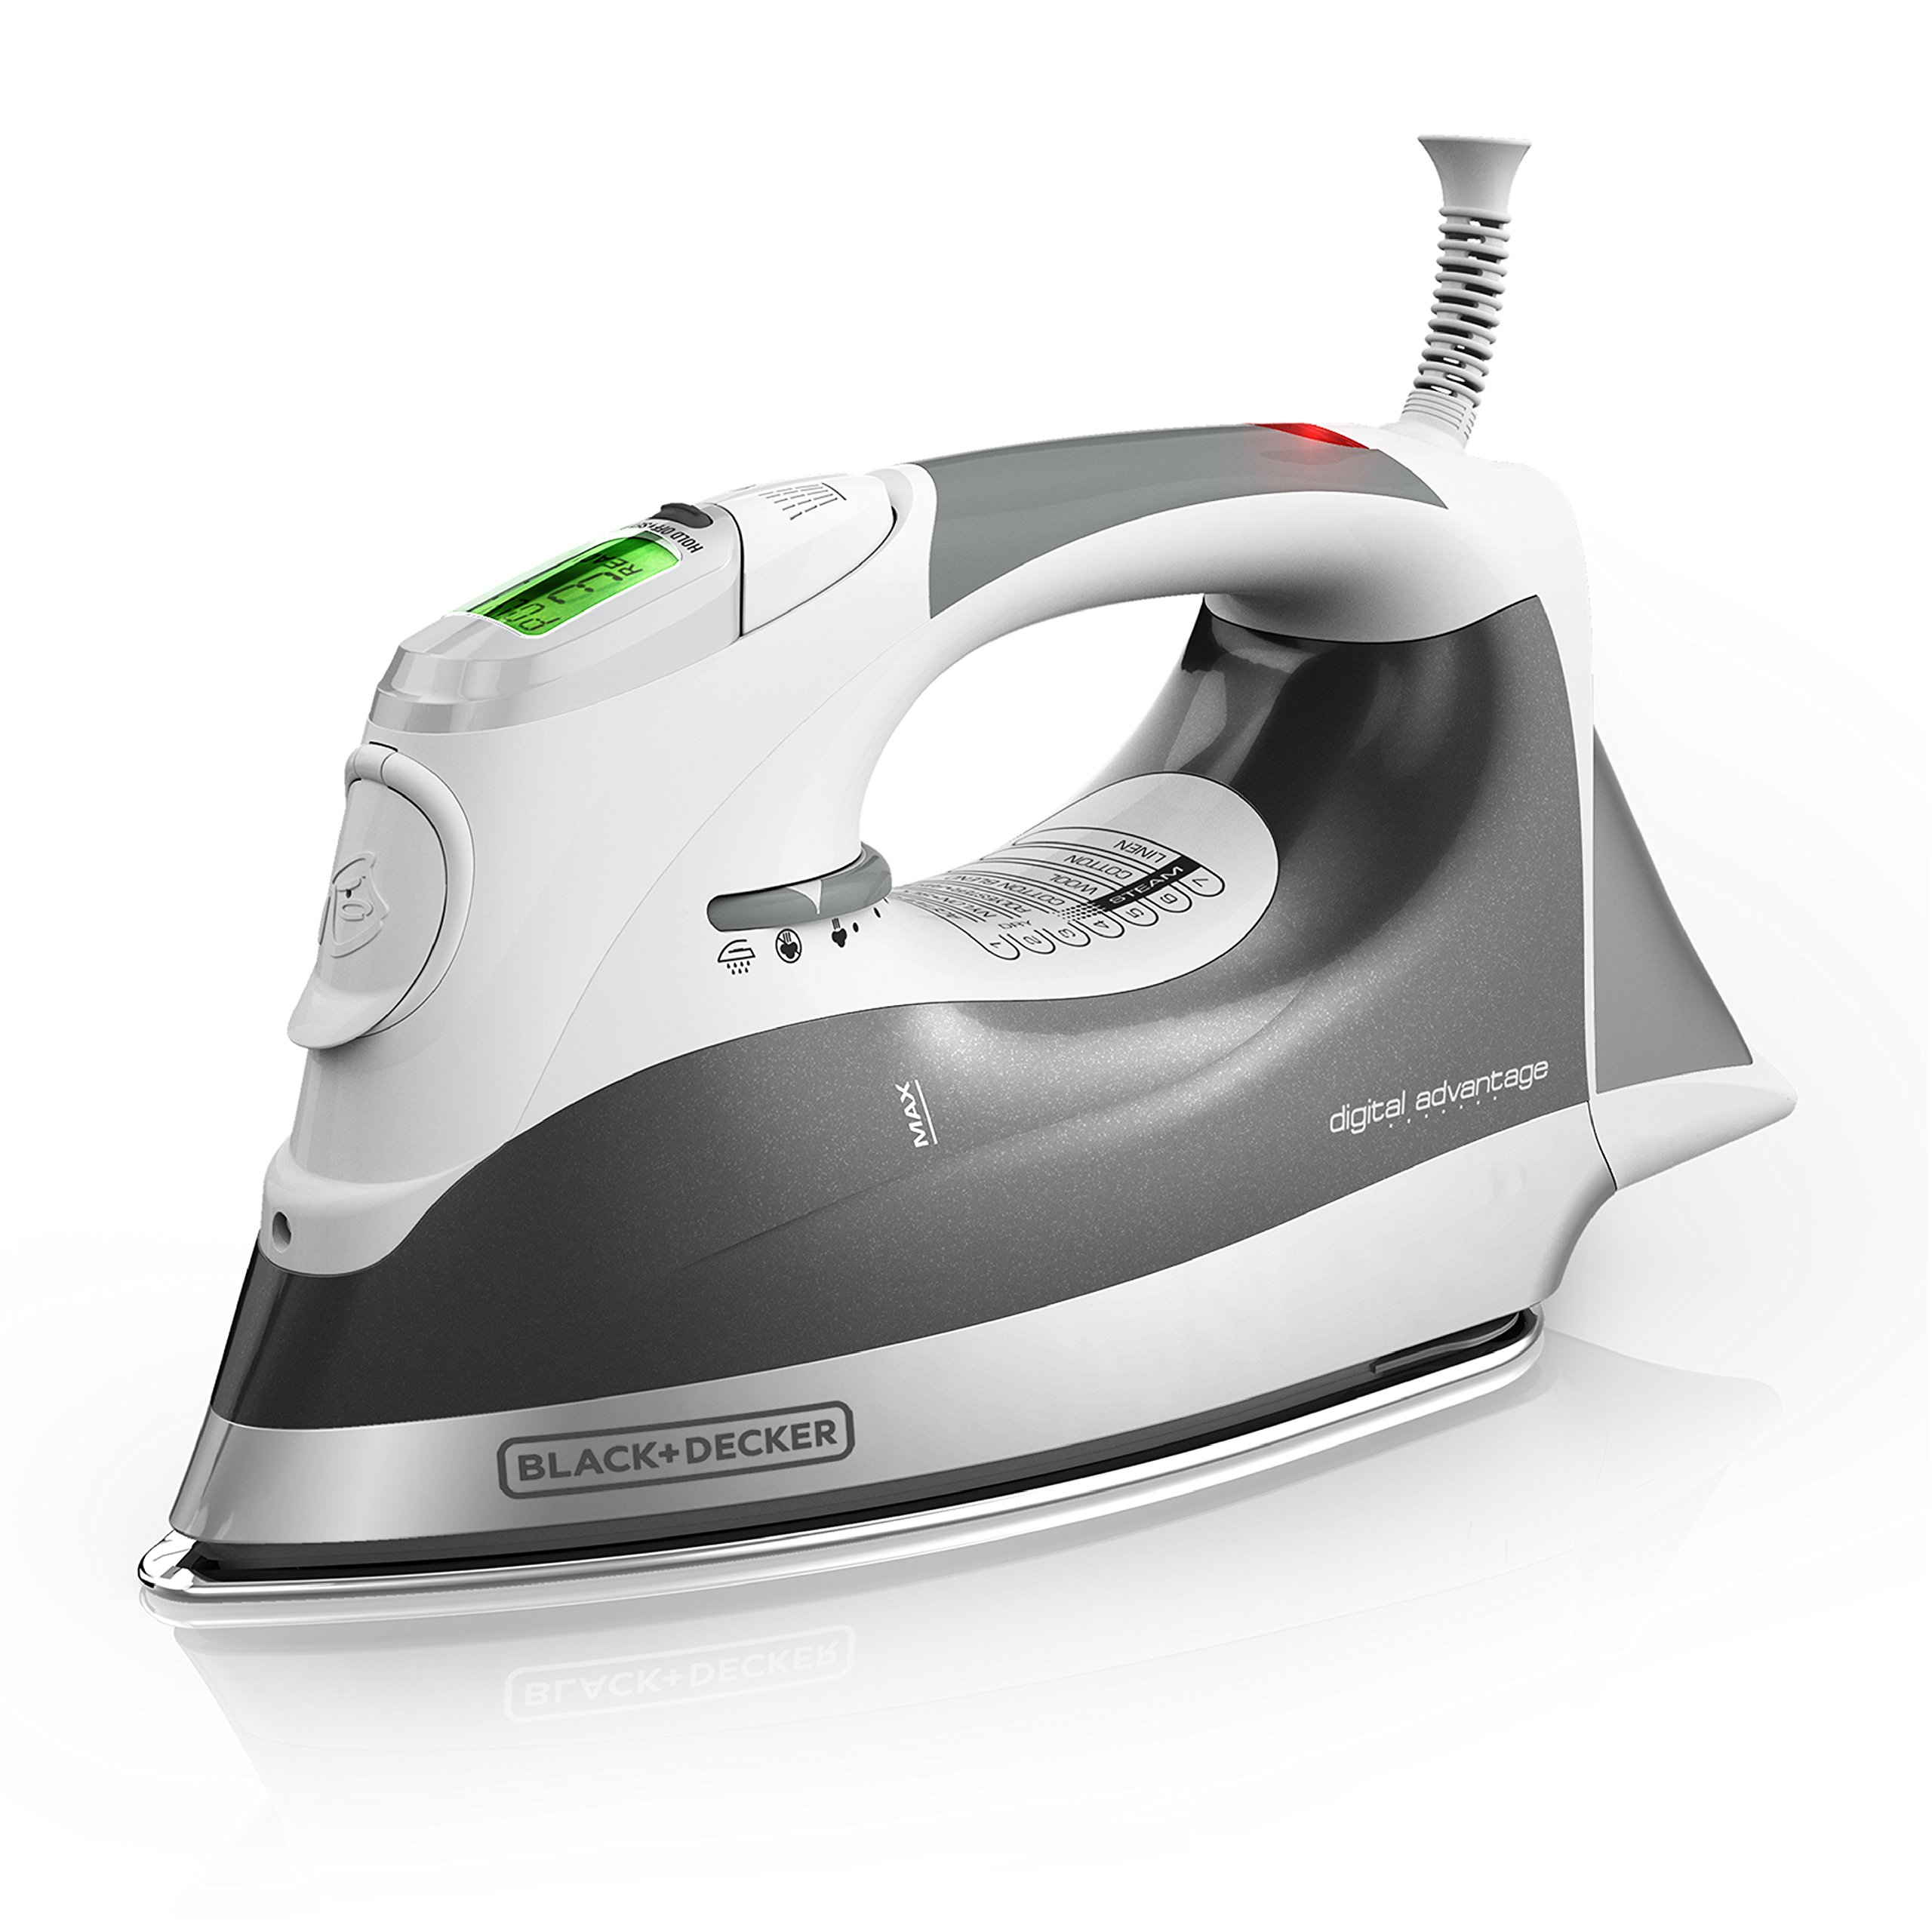 BLACK DECKER Advantage Professional D2030